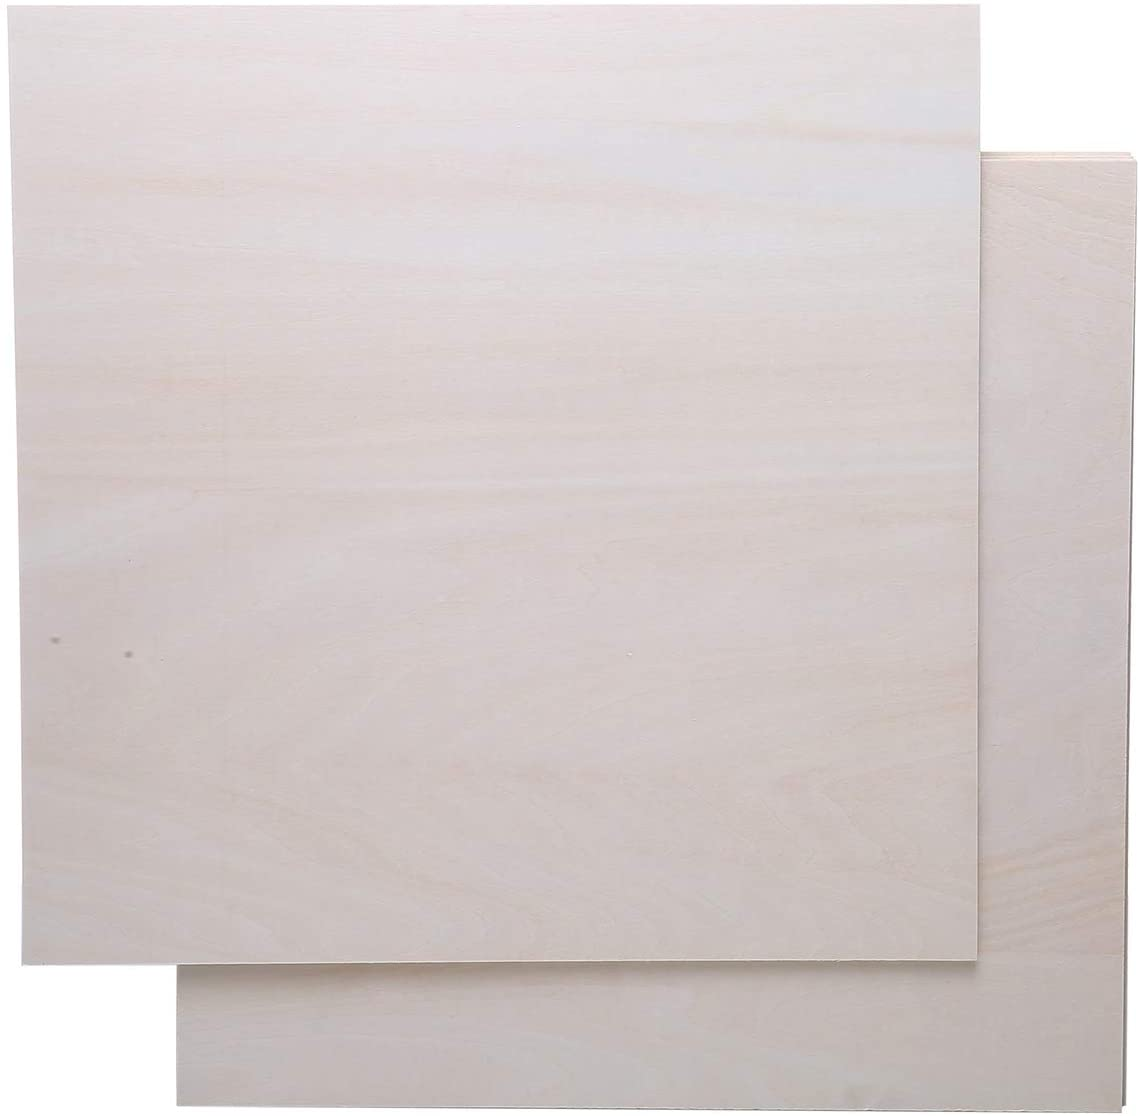 5 PCS 3mm 1/8 ×12 inch ×12 inch Unfinished Basswood Sheets, Unpainted Plywood Wood Sheets for Crafts Wood Burning Project